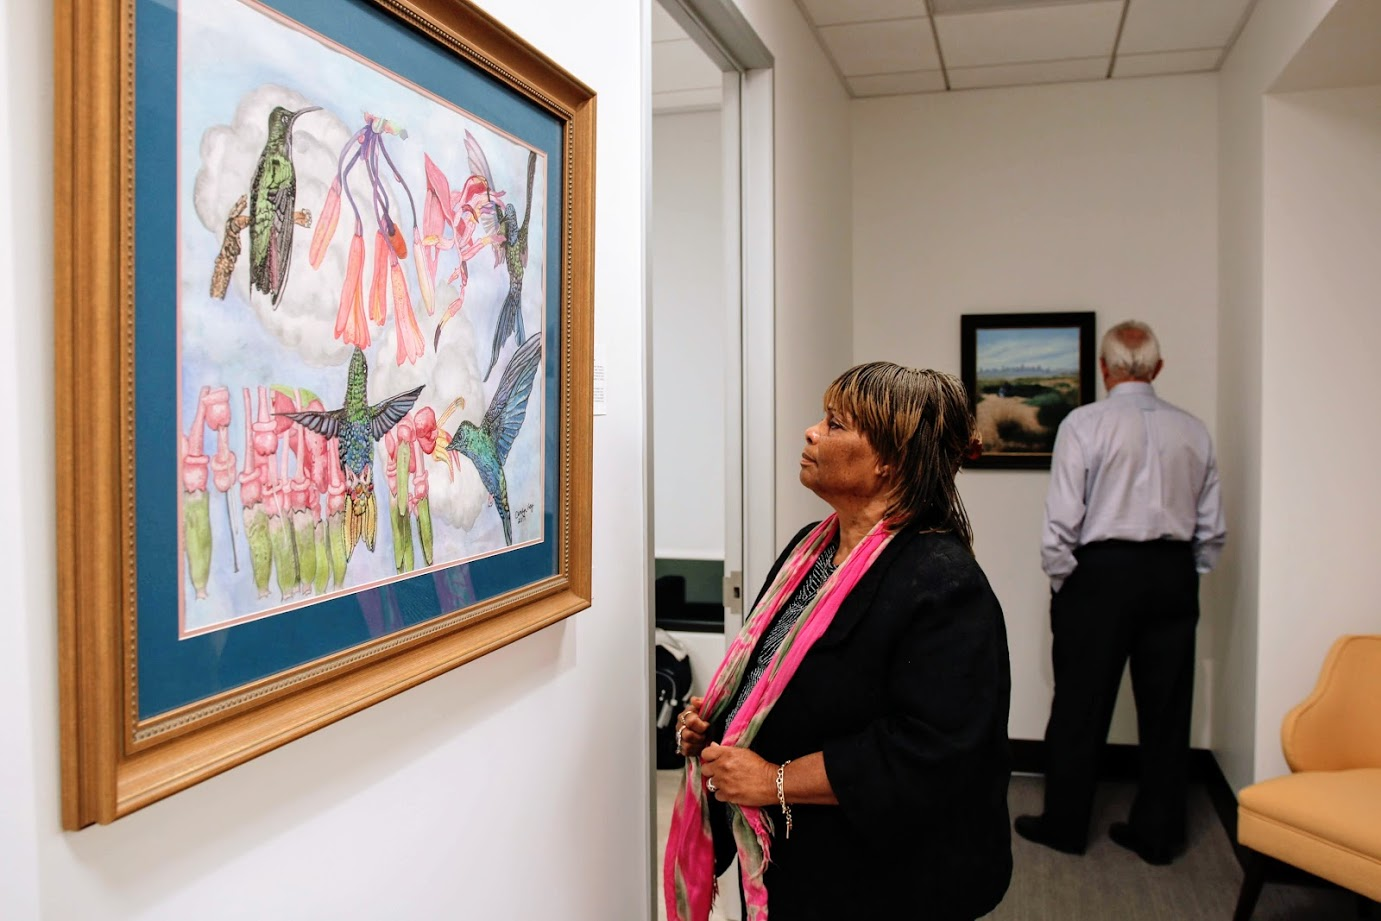 Shaily Gupta &nbsp&nbsp Members of Mastick Senior Center's drawing and painting classes opened an exhibition of their works at Calyx Health last week. The public is invited to view the works during the clinic's regular office hours: Monday through Friday, 8 a.m. to 4 p.m.